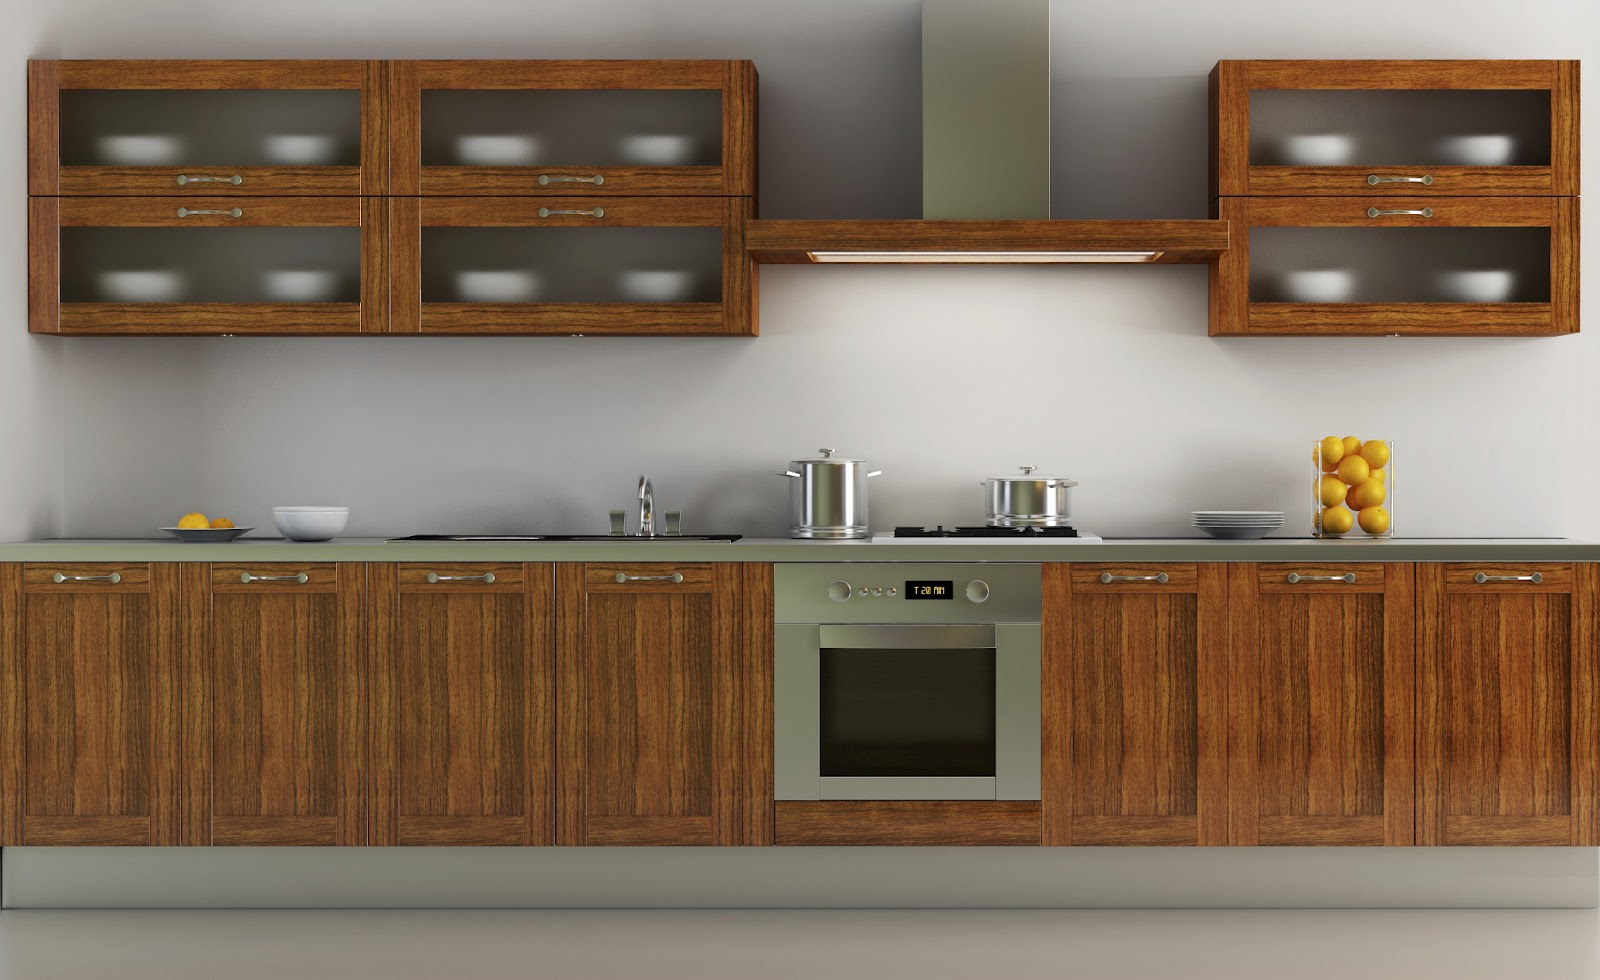 Wooden Furniture For Kitchen 28 images Furniture How To Find